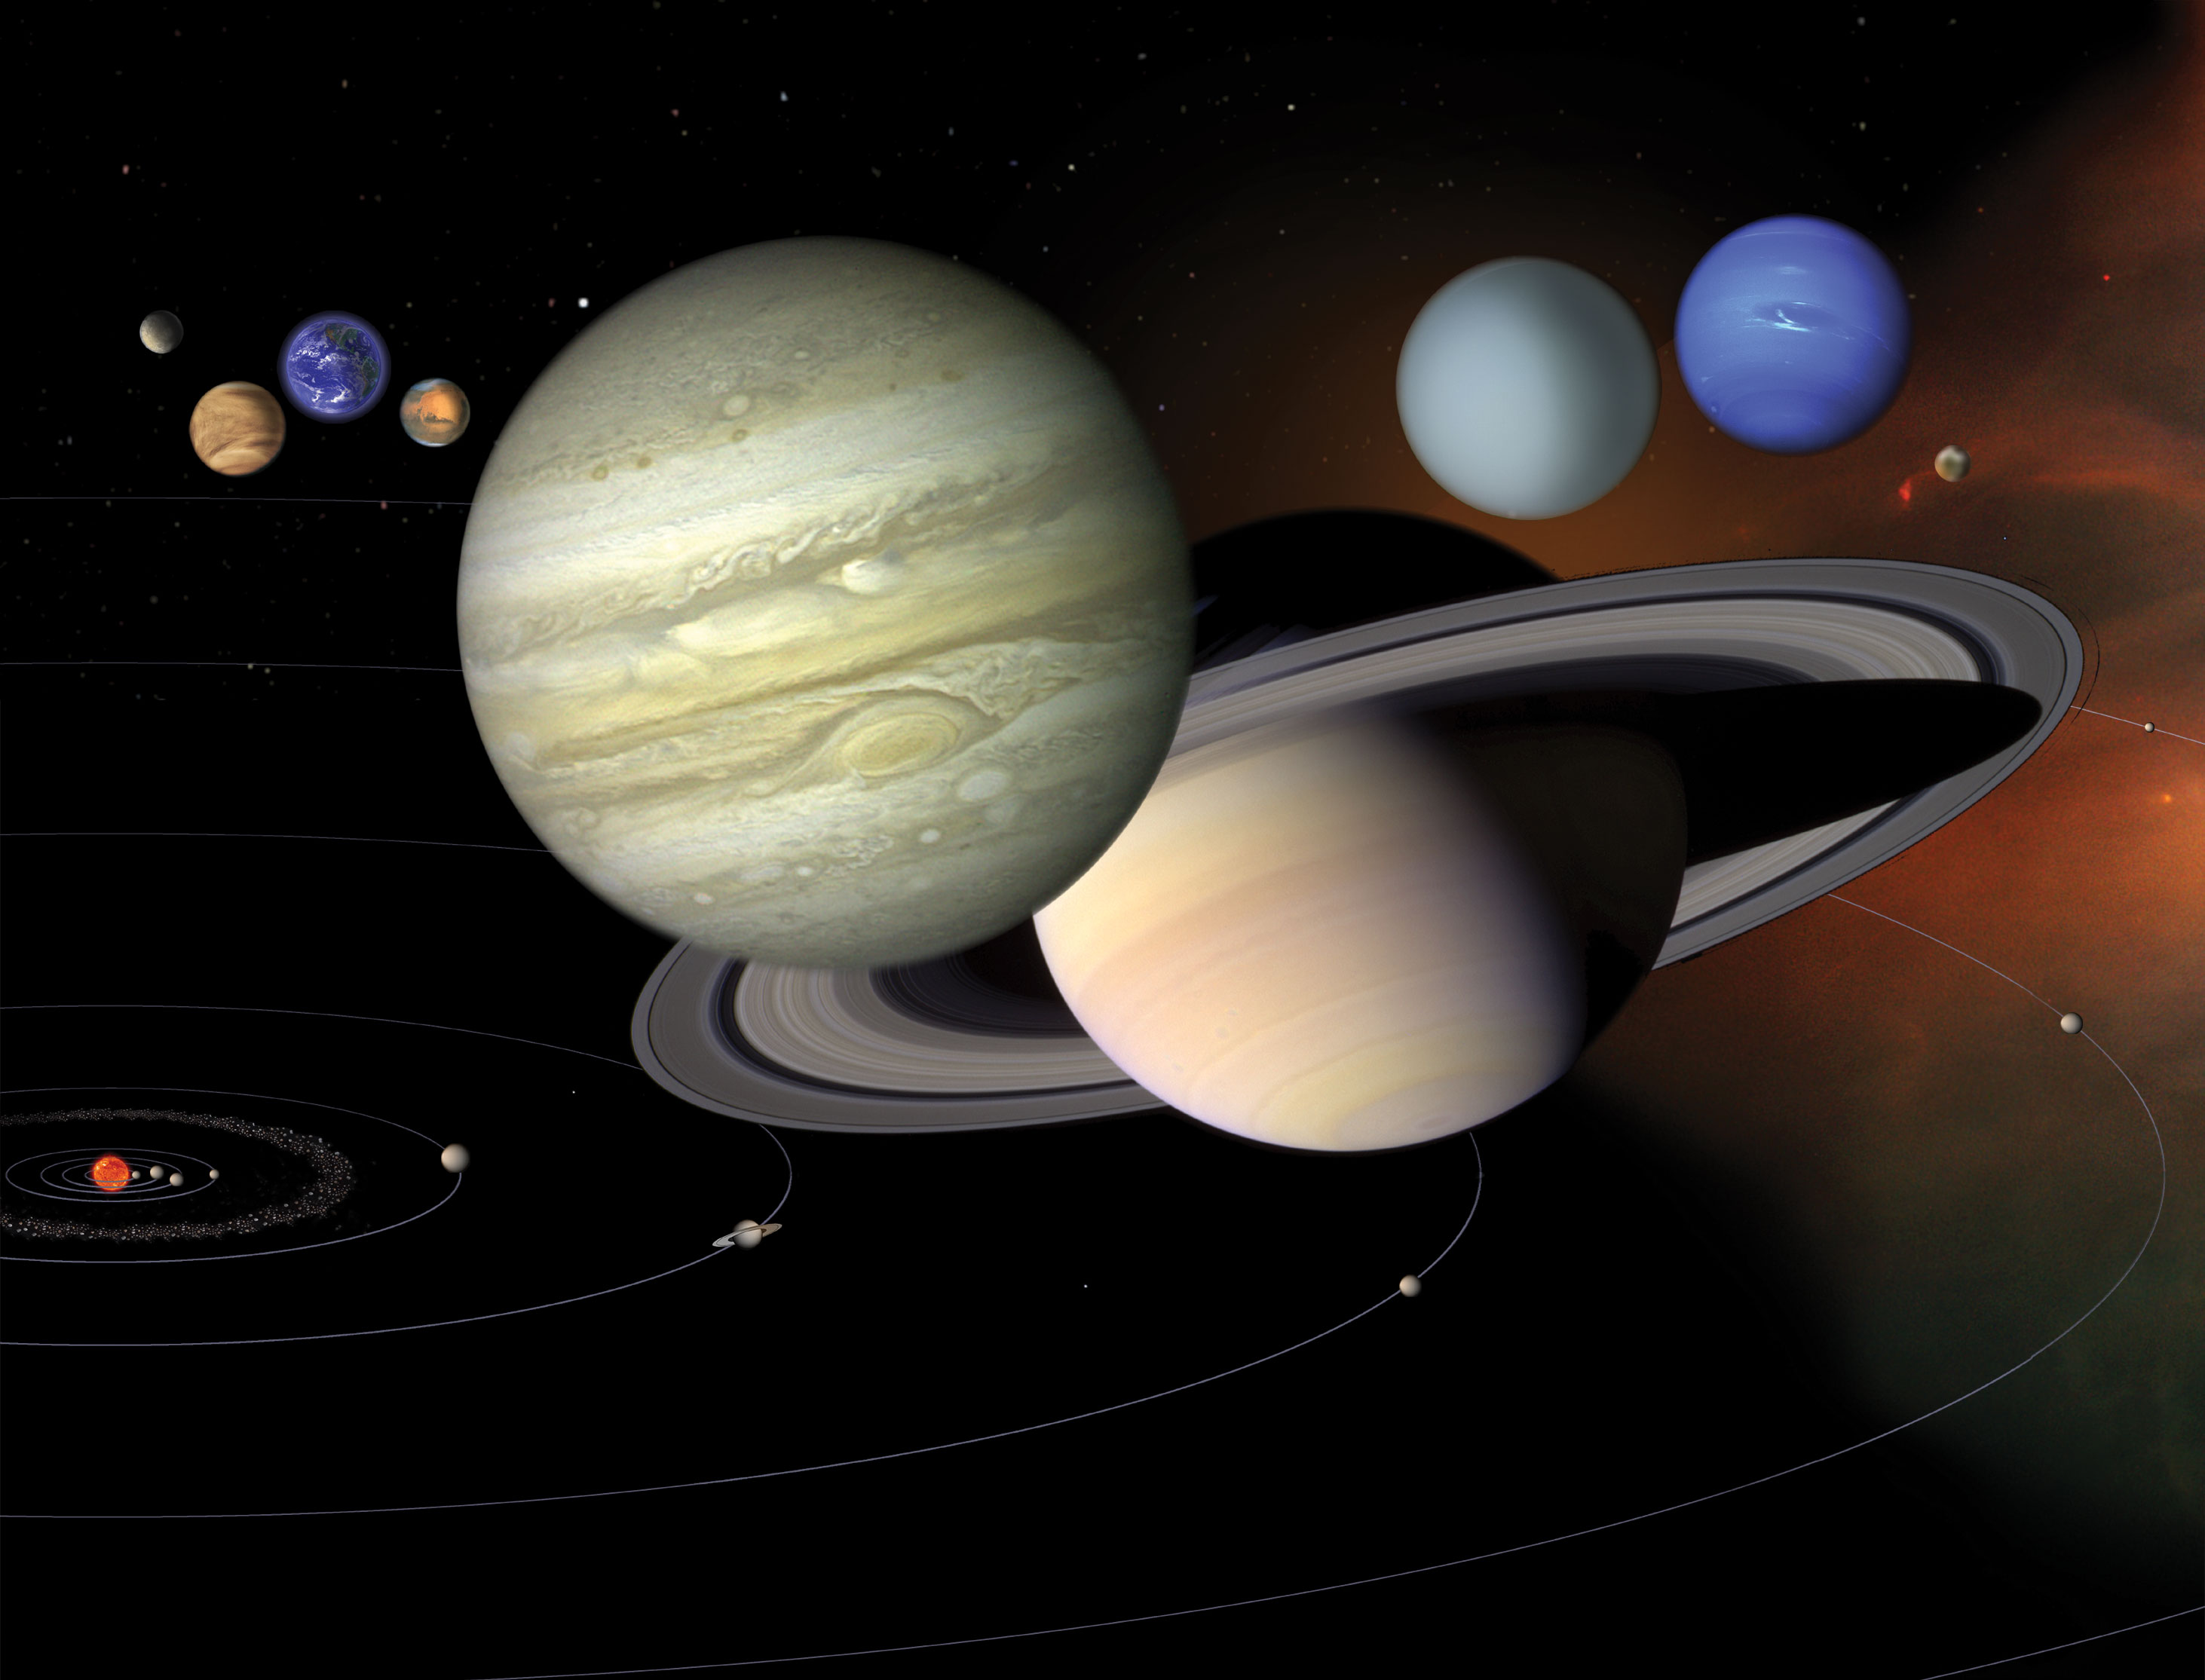 Montage of the planets in the solar system